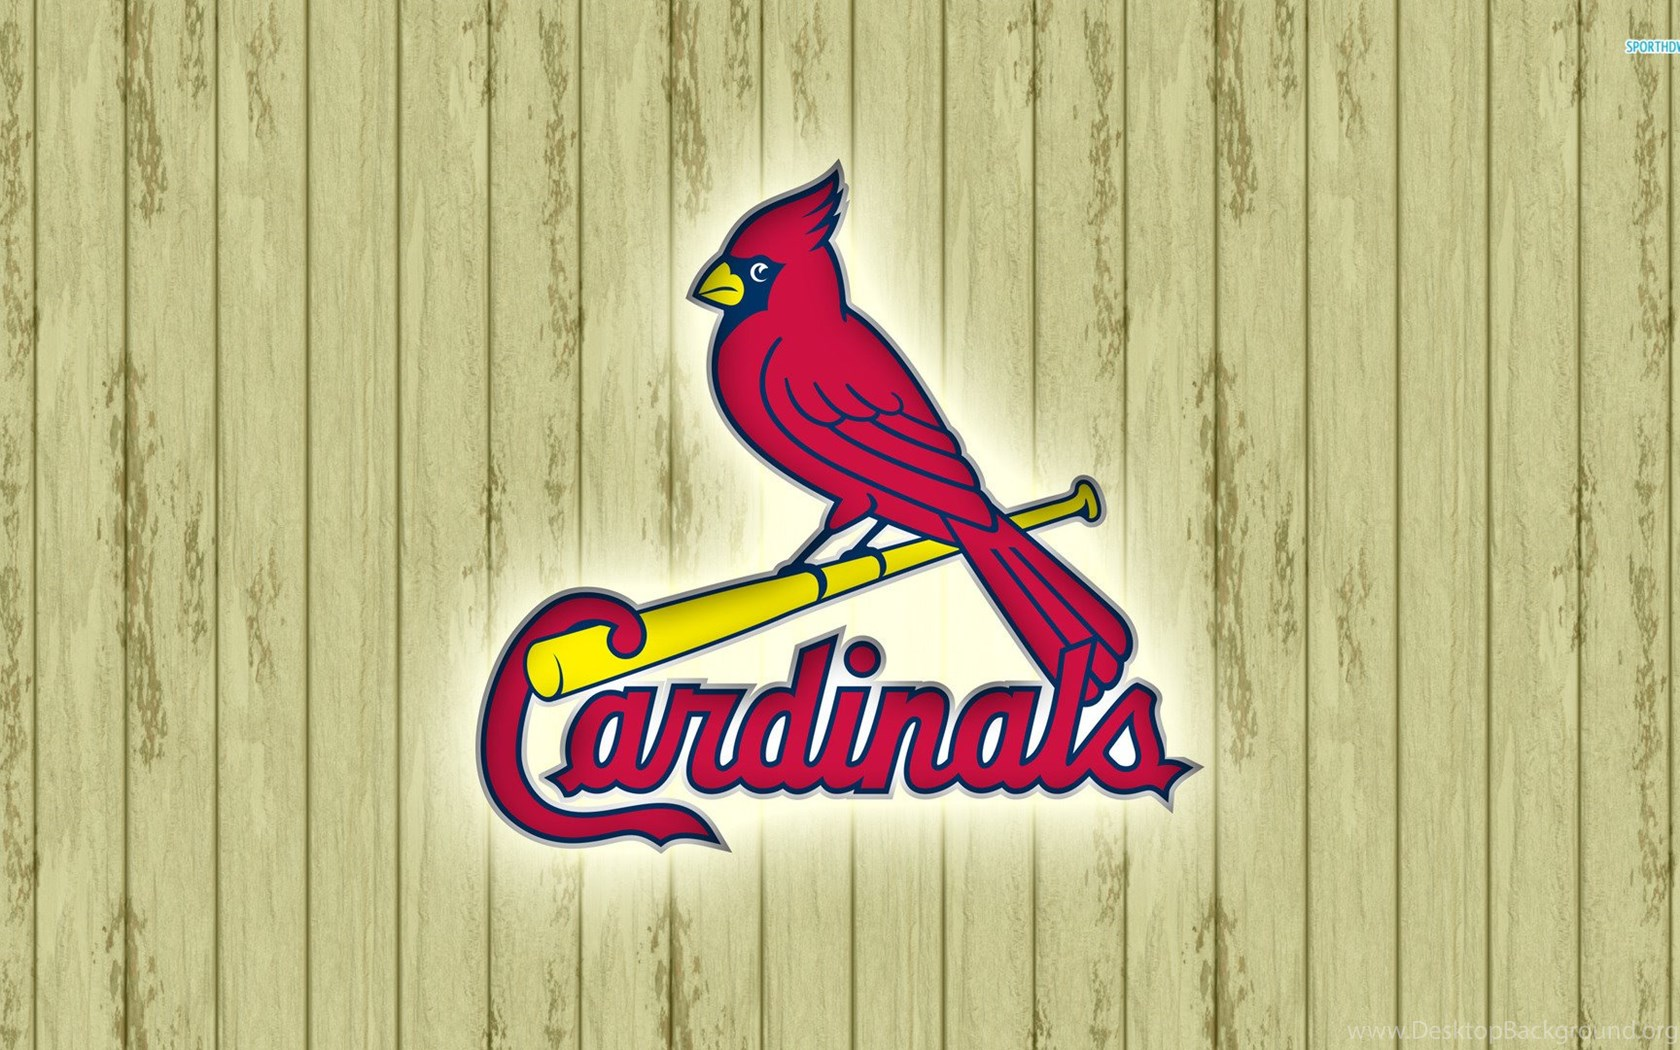 Wallpapers St Louis Cardinals 1920x1080 Desktop Background